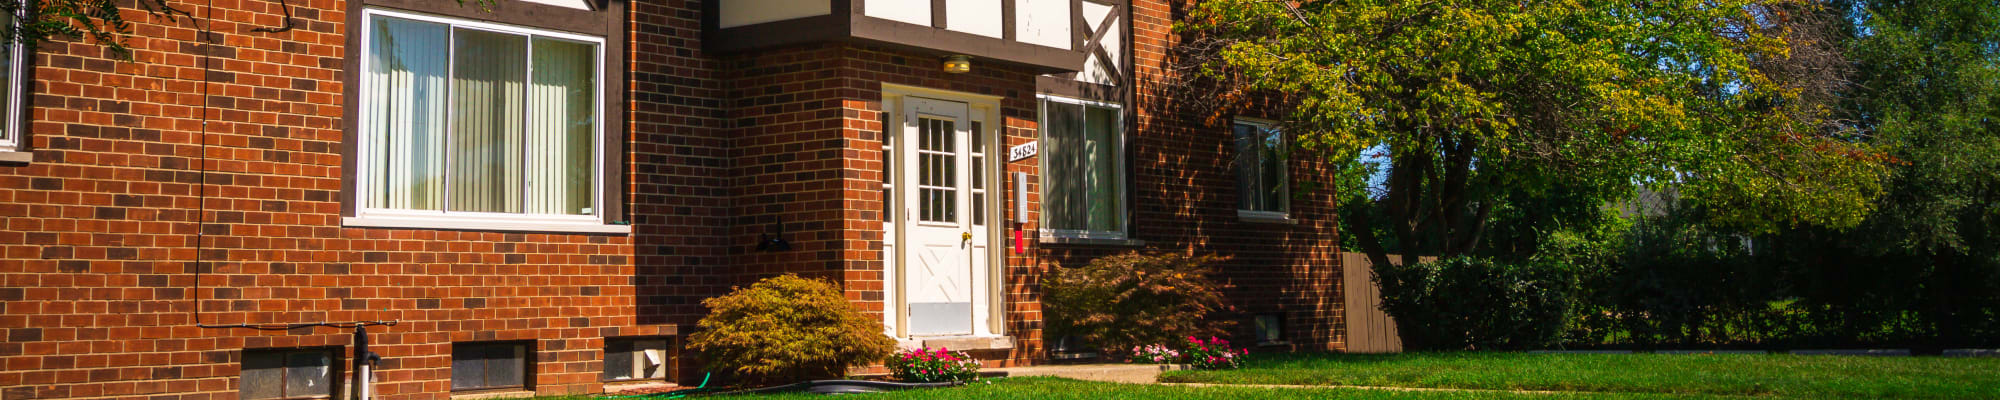 Contact us at Maple Grove Apartments in Sterling Heights, Michigan